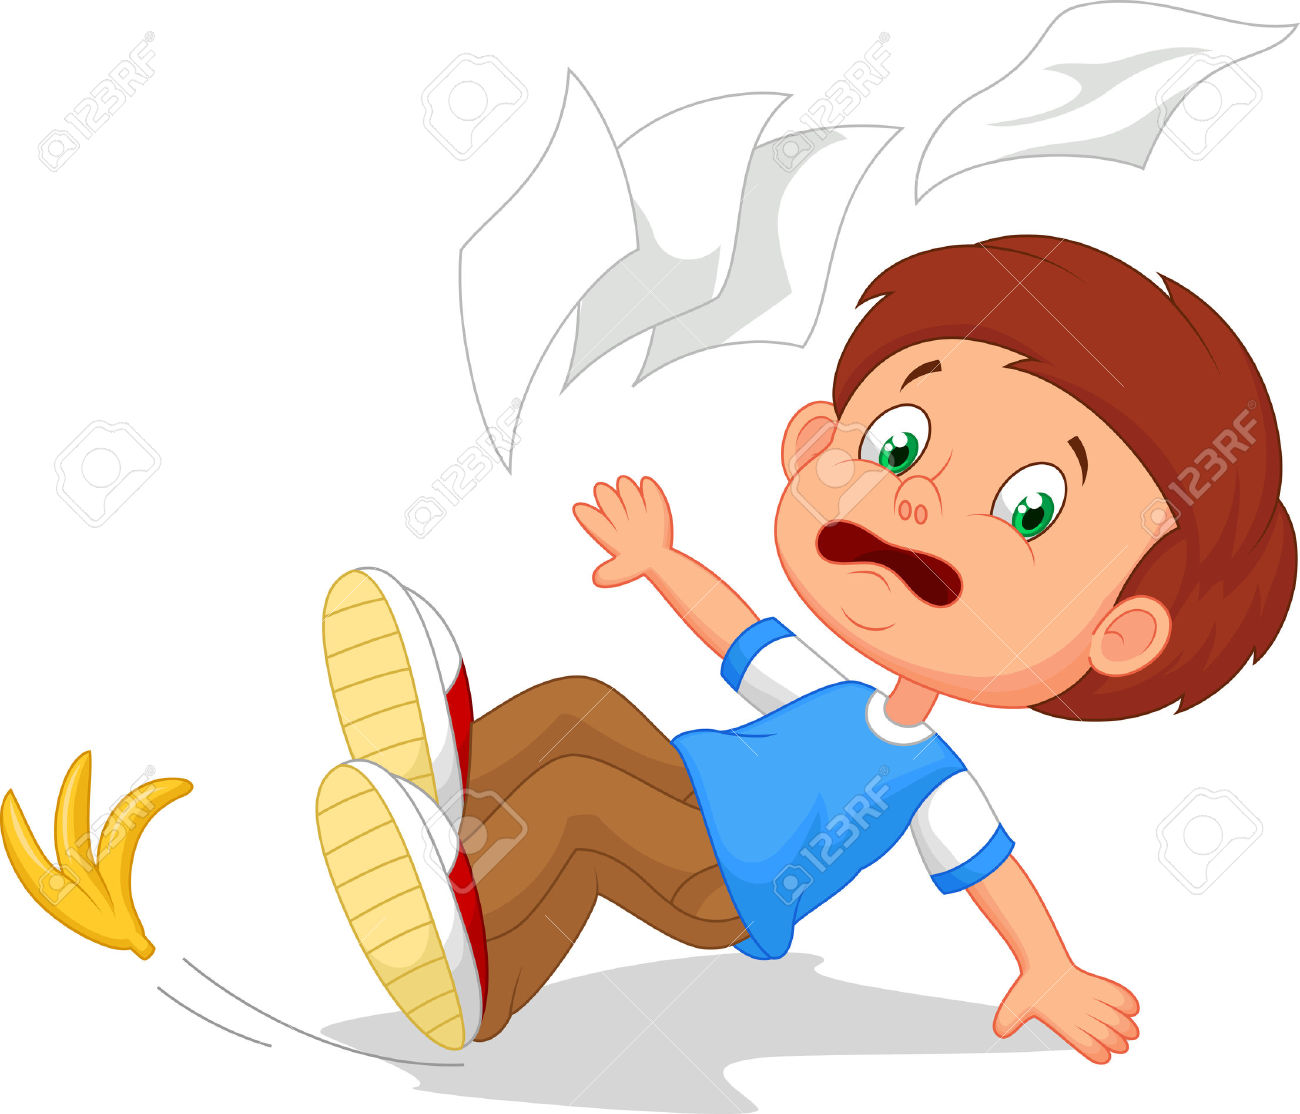 slip and fall clip art free - photo #22